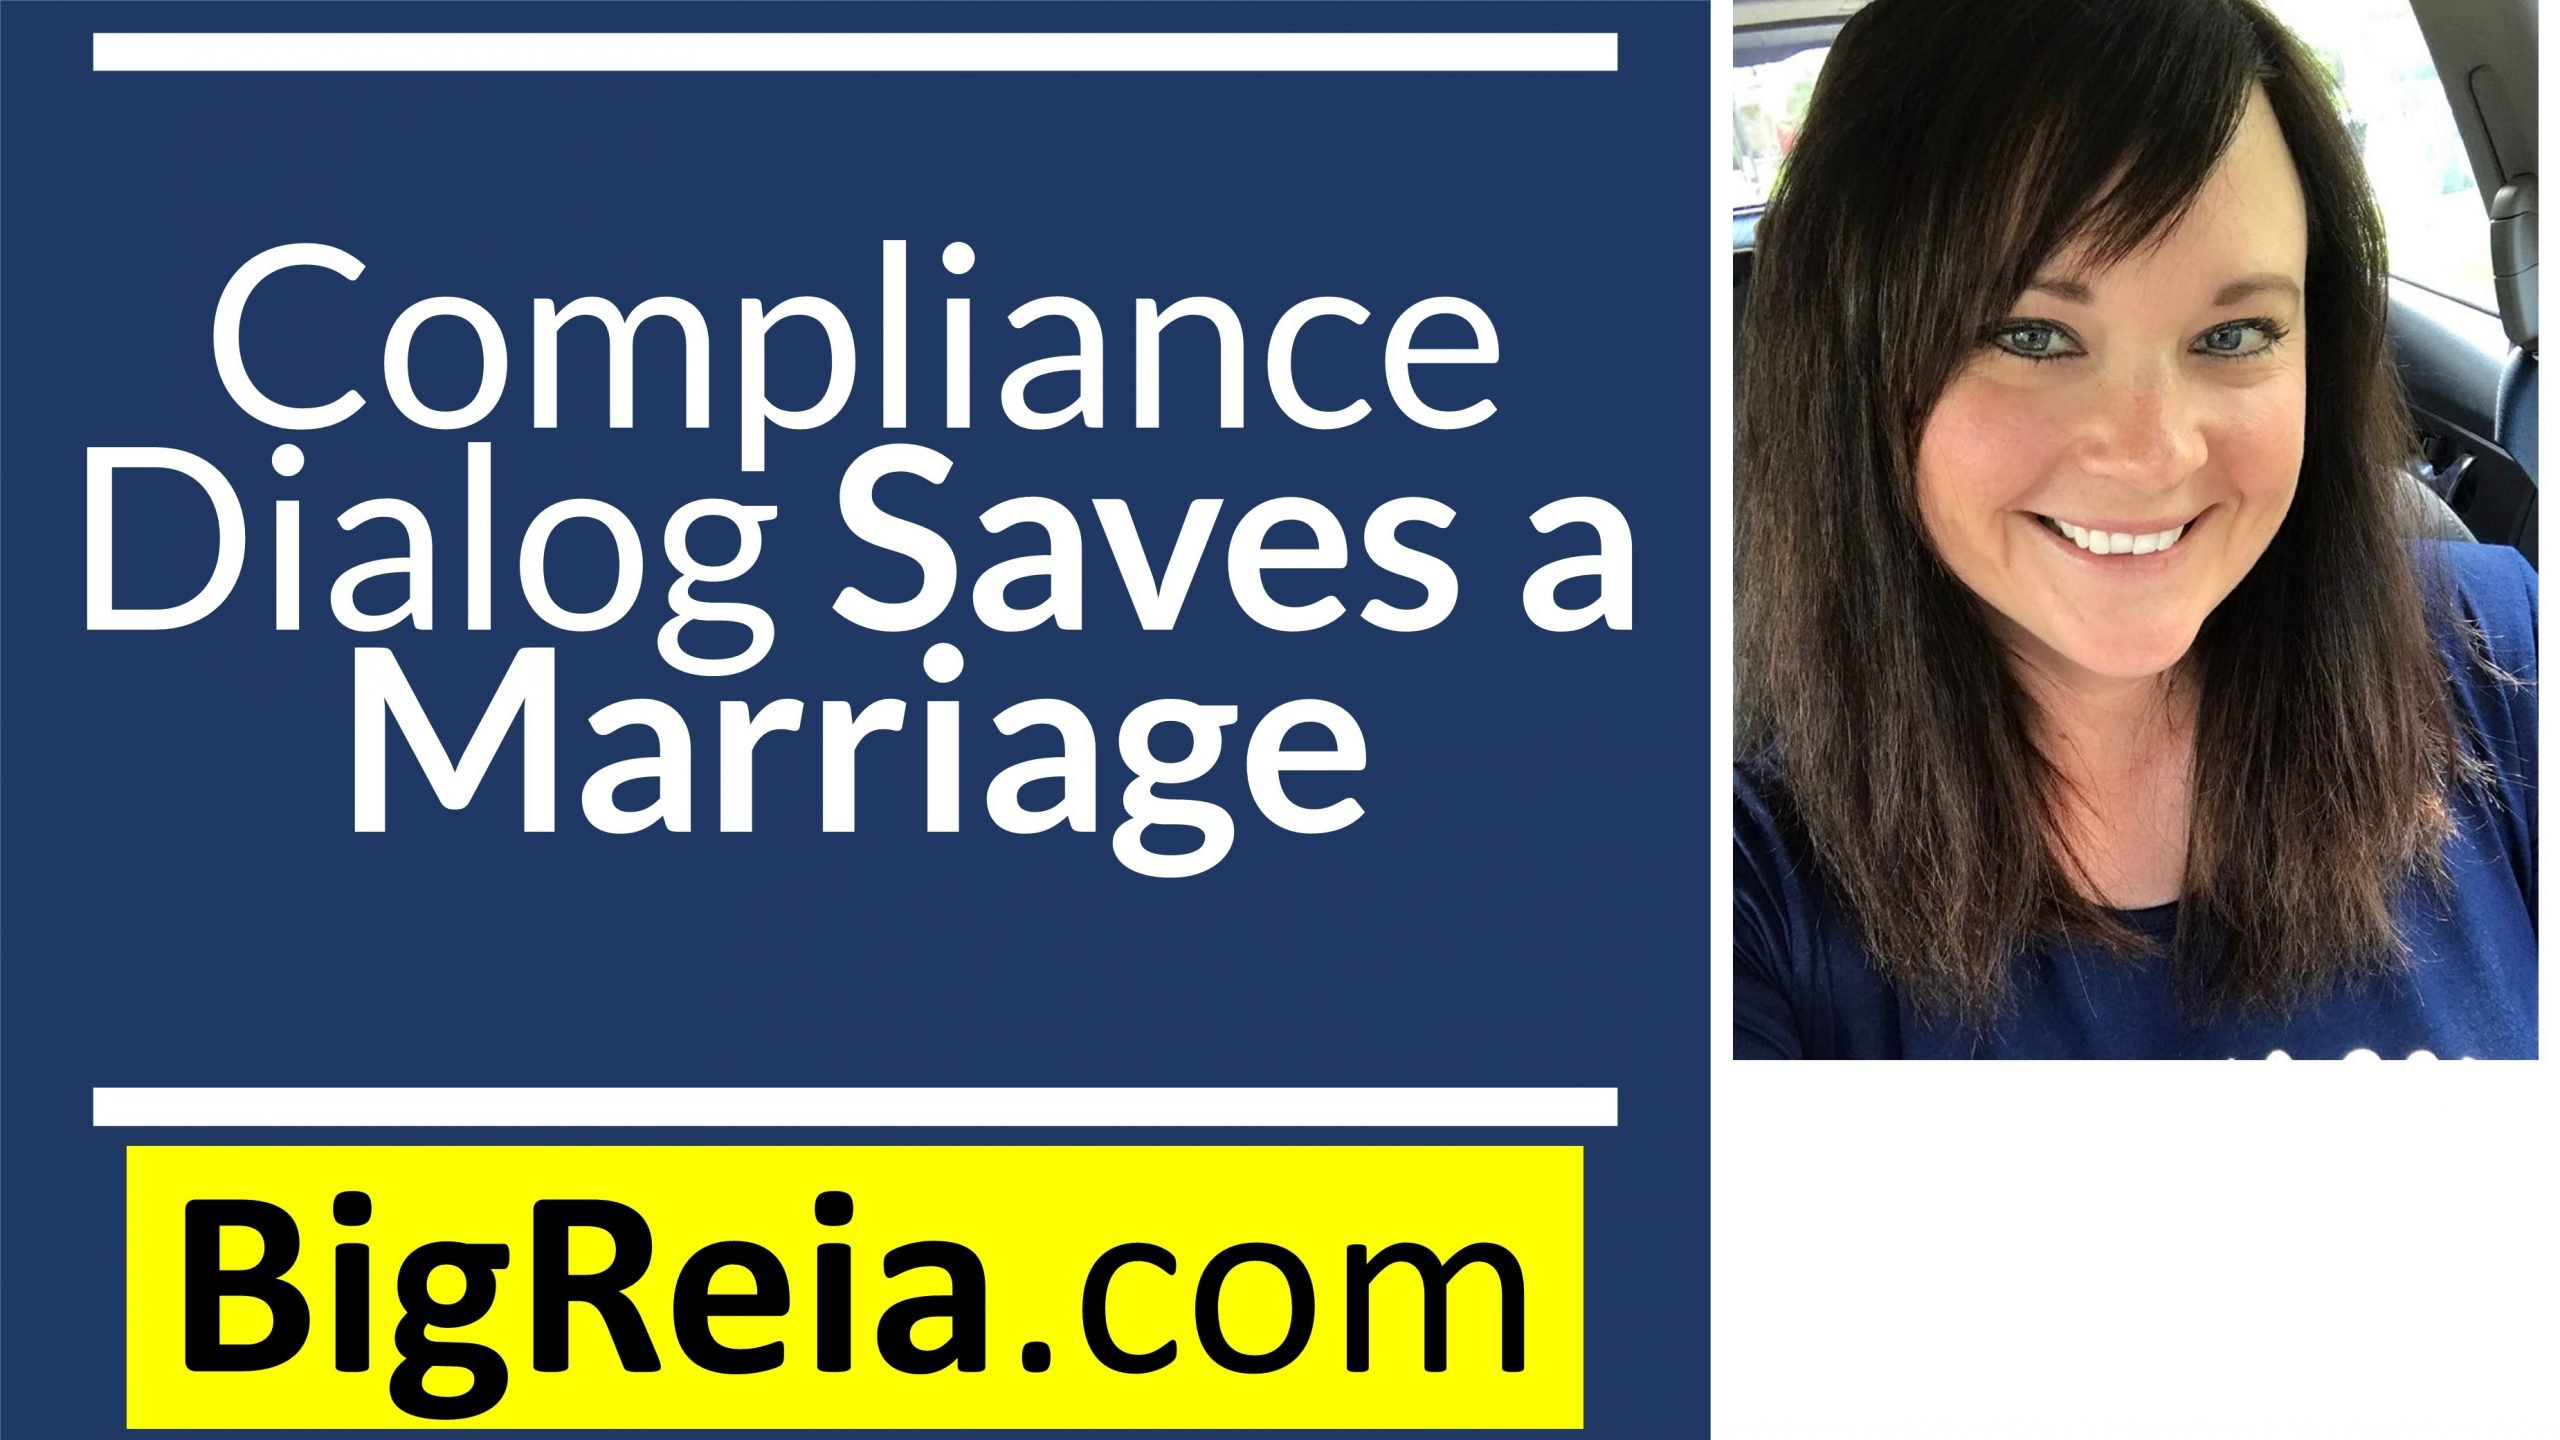 Real estate investors: Compliance Dialog Saves a Marriage in less than 30 seconds, here's how…